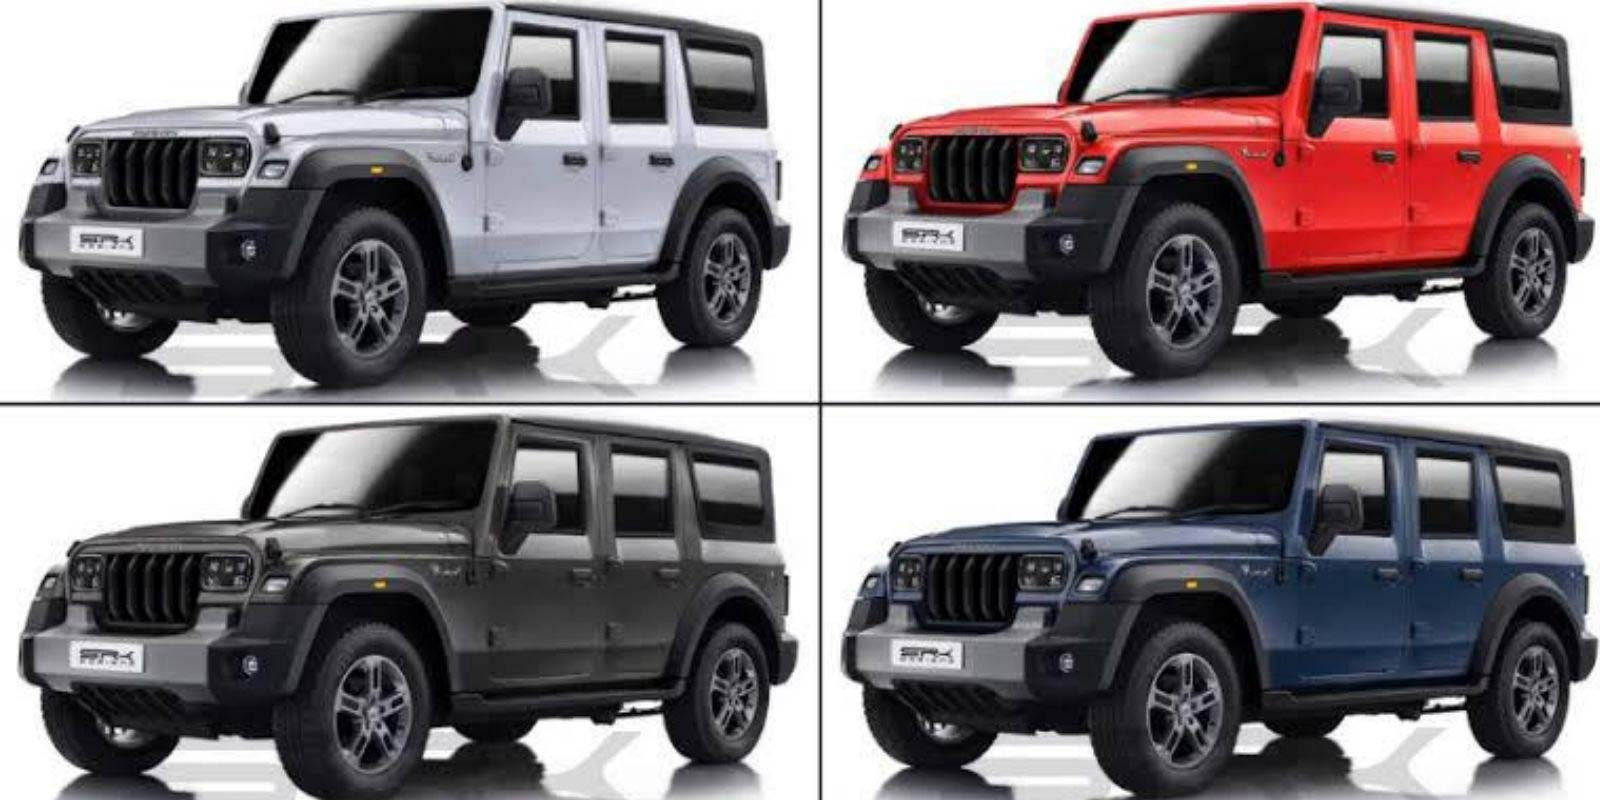 Five-Door Mahindra Thar In The Development; Launch Likely In 2021